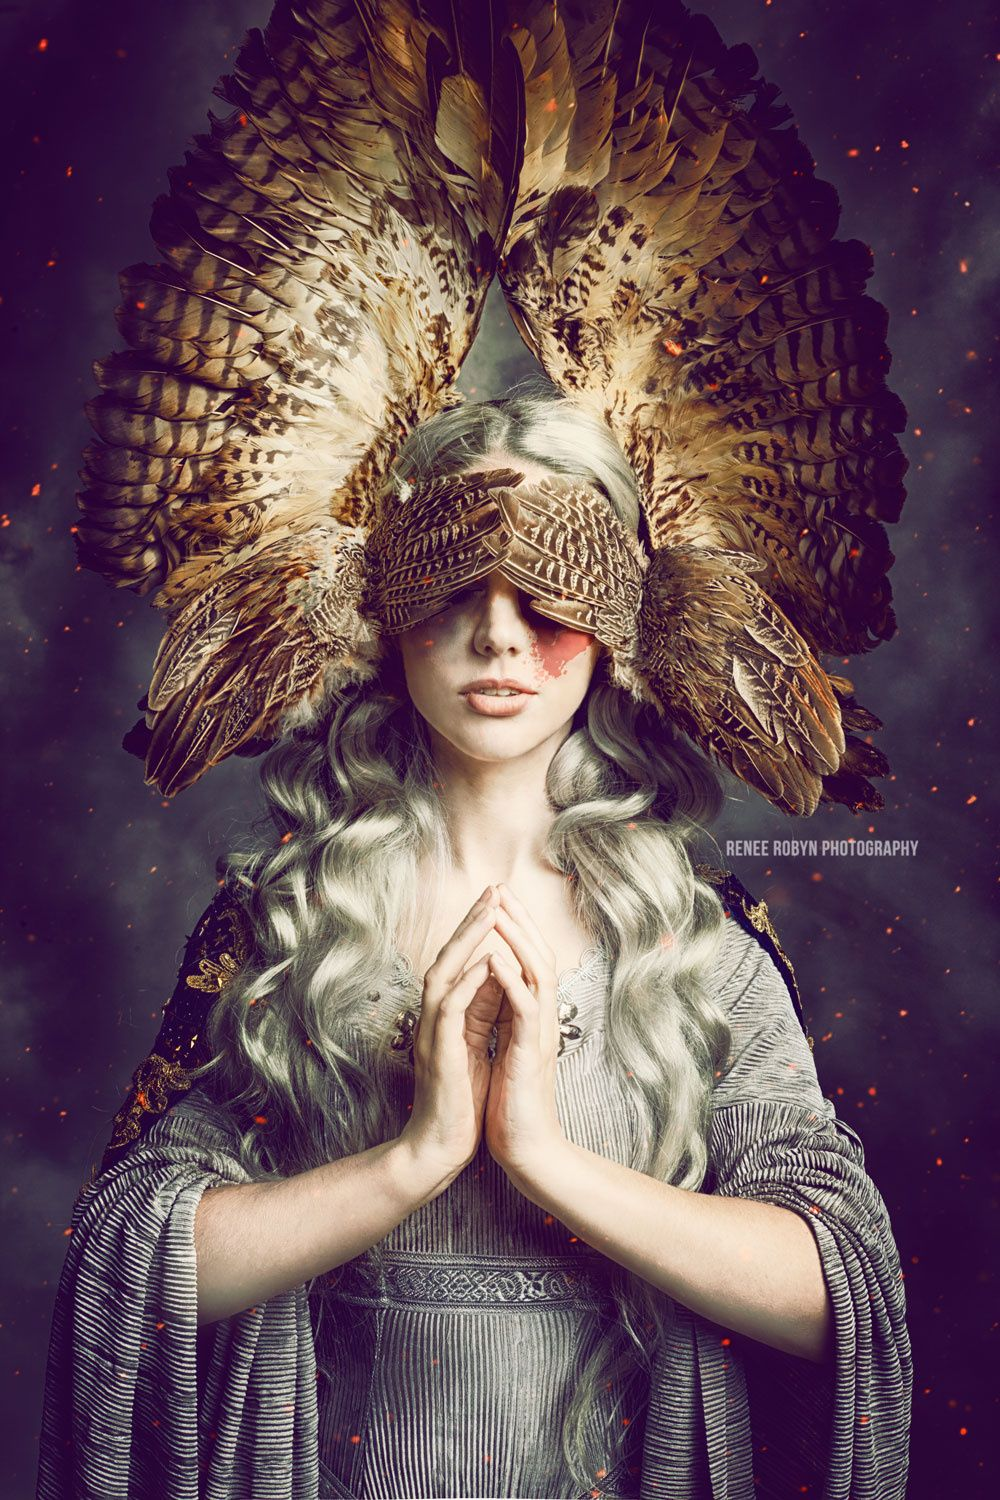 Blind Oracle by Renee Robyn - Photo 159243183 - 500px | Amazing ...